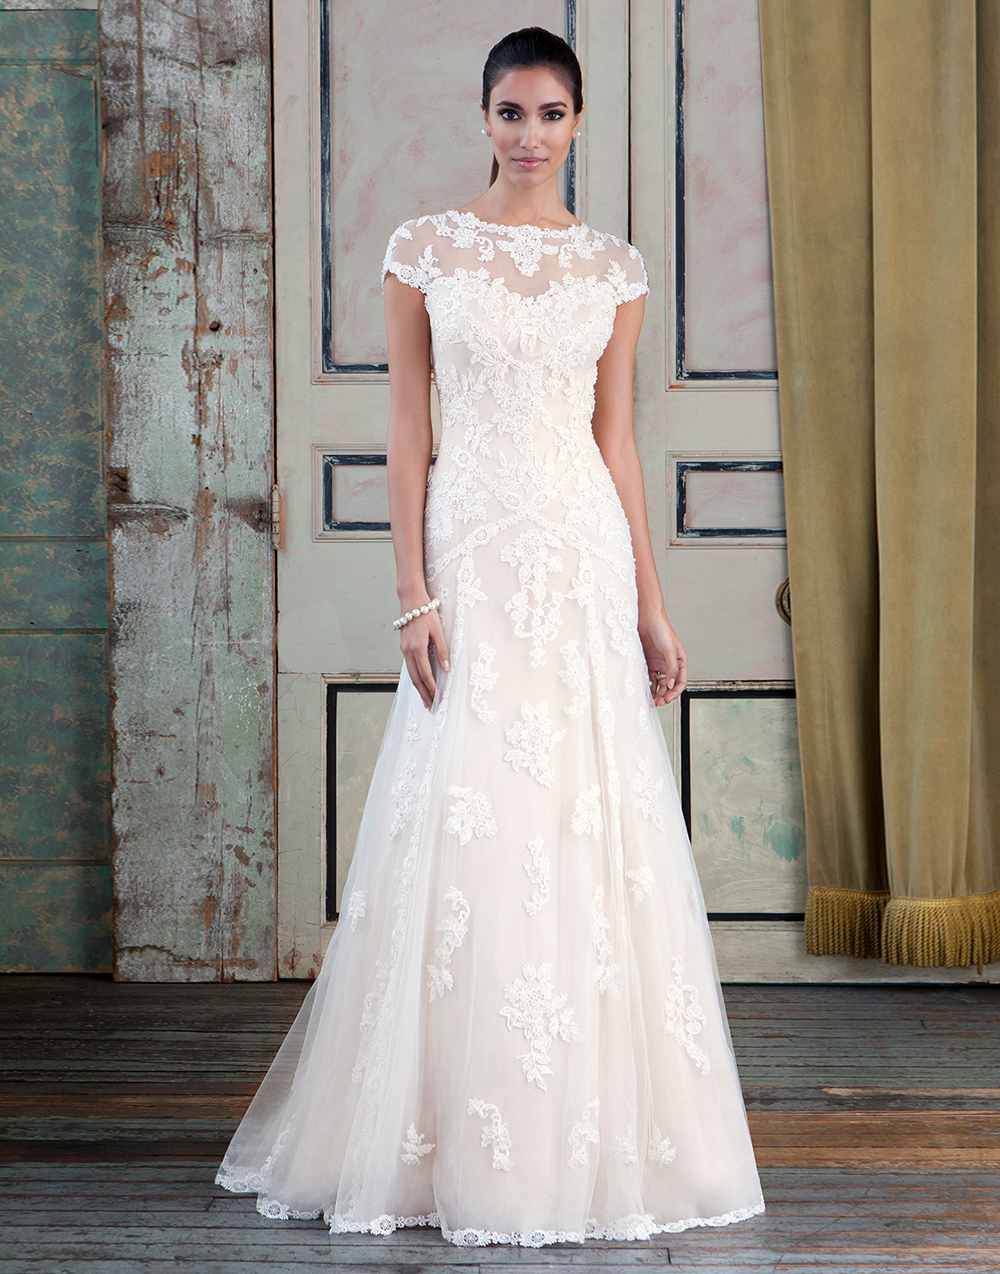 Wedding dresses bridal shop manchester fairytale brides for Wedding dress pick up style